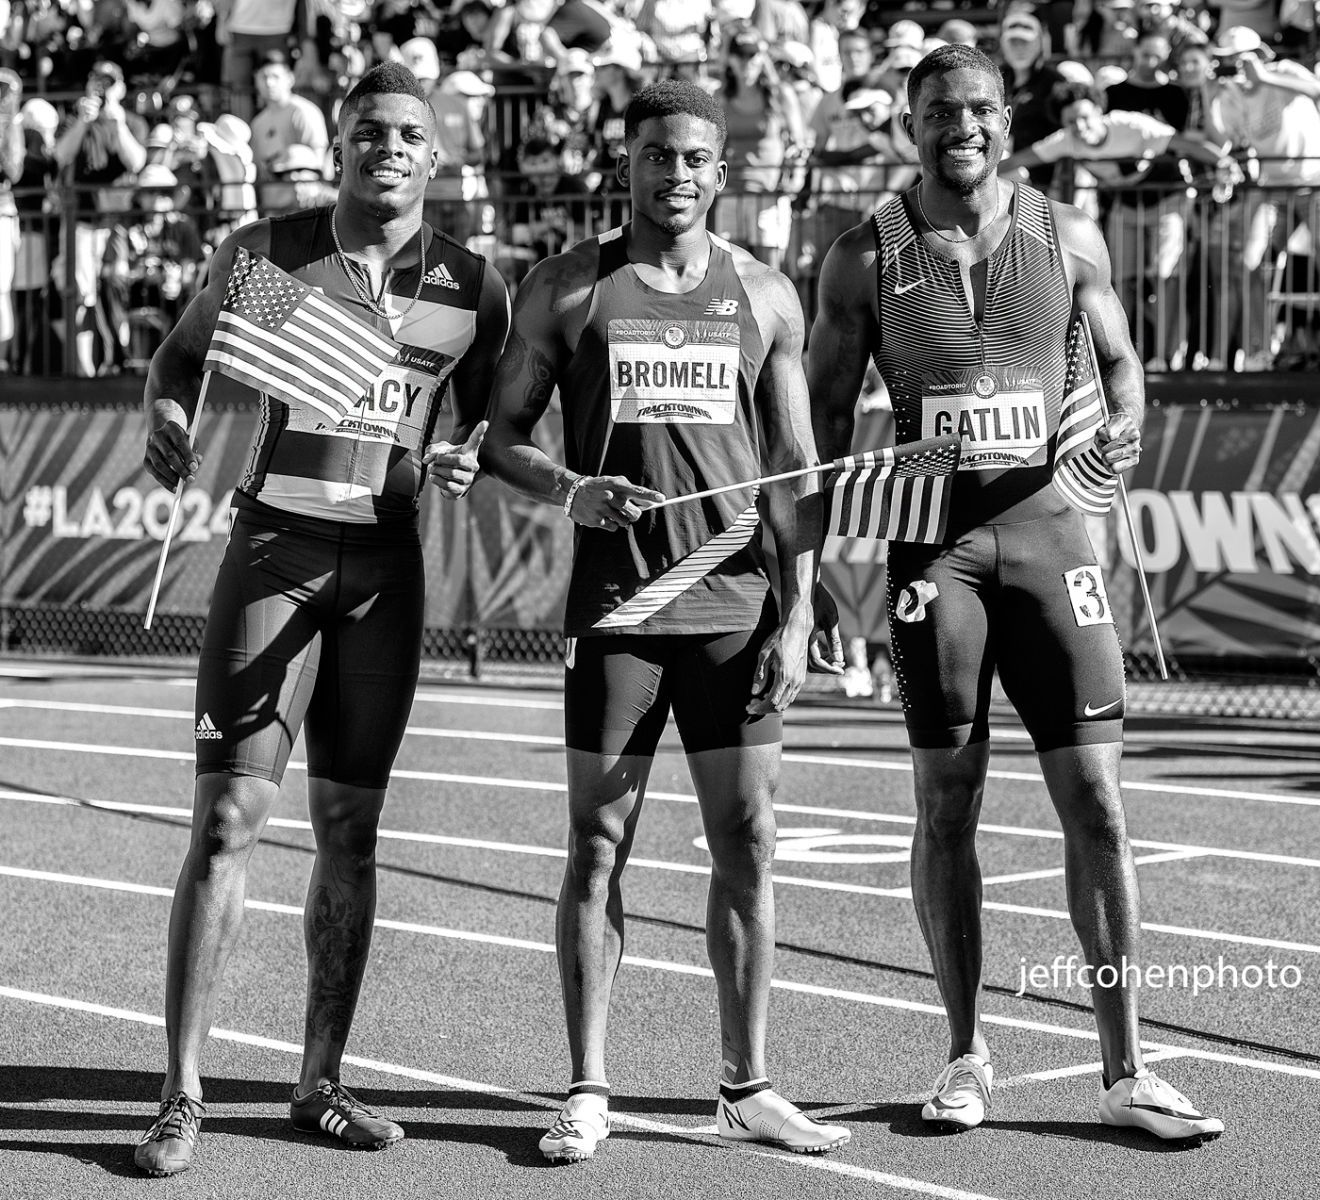 1r2016_oly_trials_day_3_100m_winners_jeff_cohen_photo_11565_web.jpg